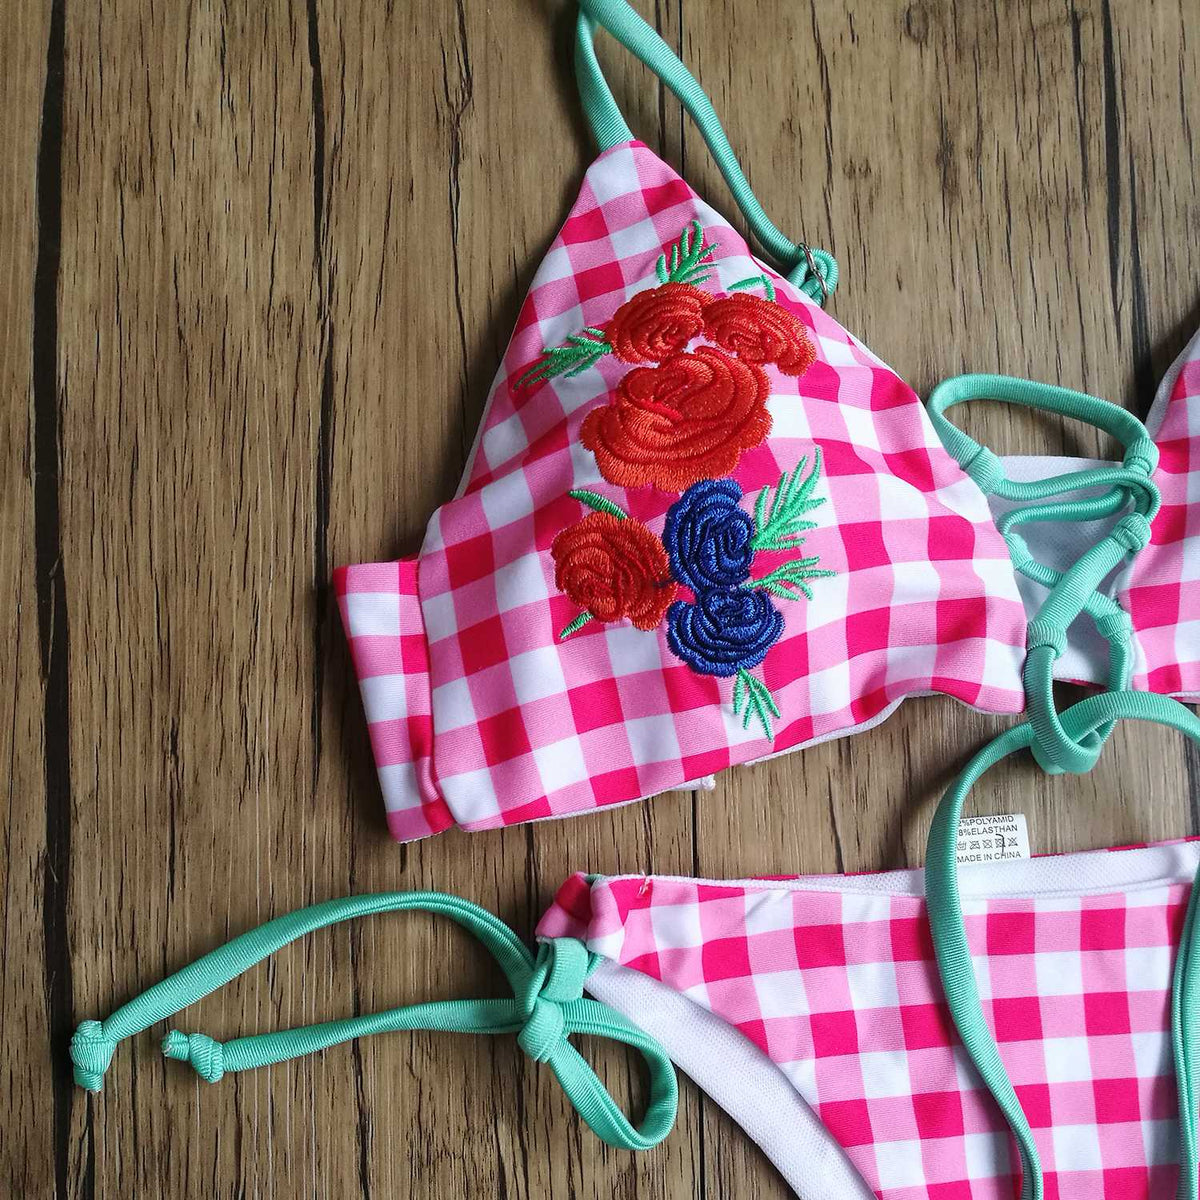 Floral Embroidered Gingham High Rise Bikini Set - Red - worthtryit.com